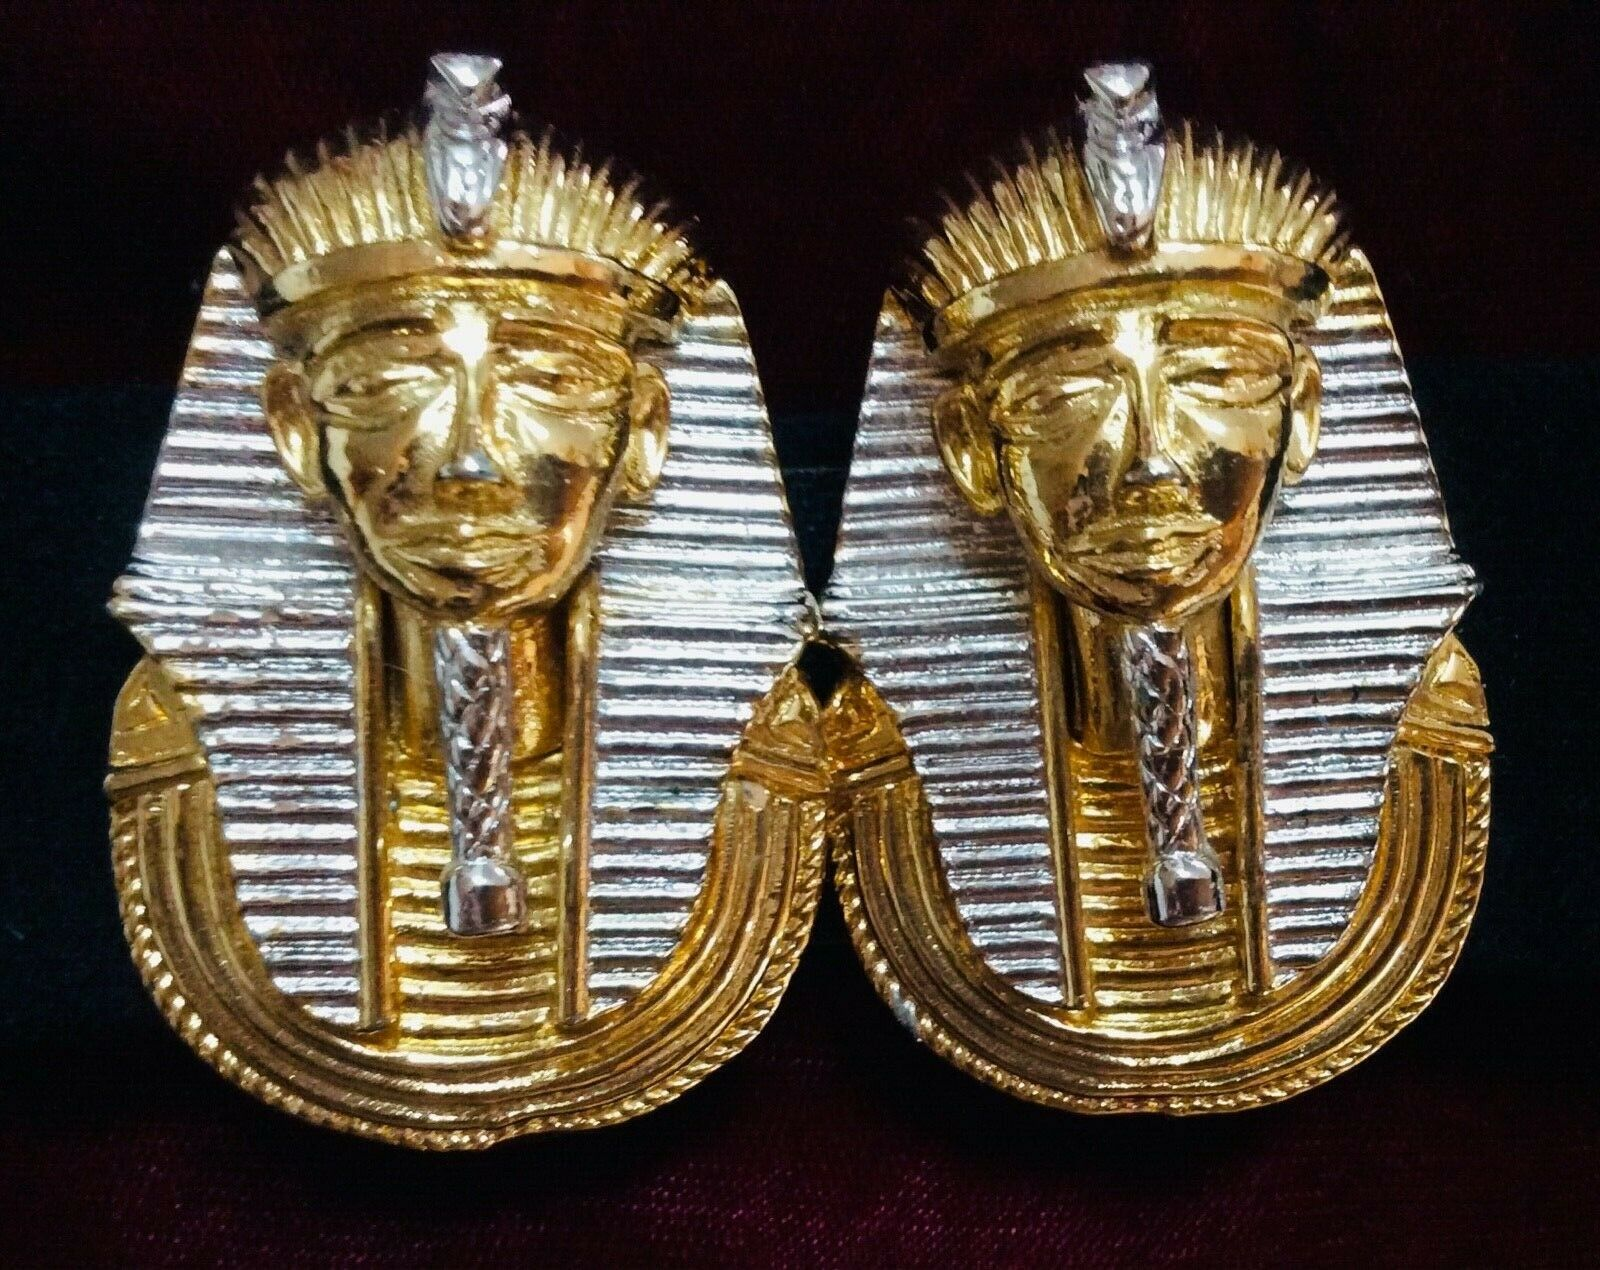 Gay Boyer Rare signed Vtg.Pair King Tut Luxe Silver & Gold-tone buckles & belt